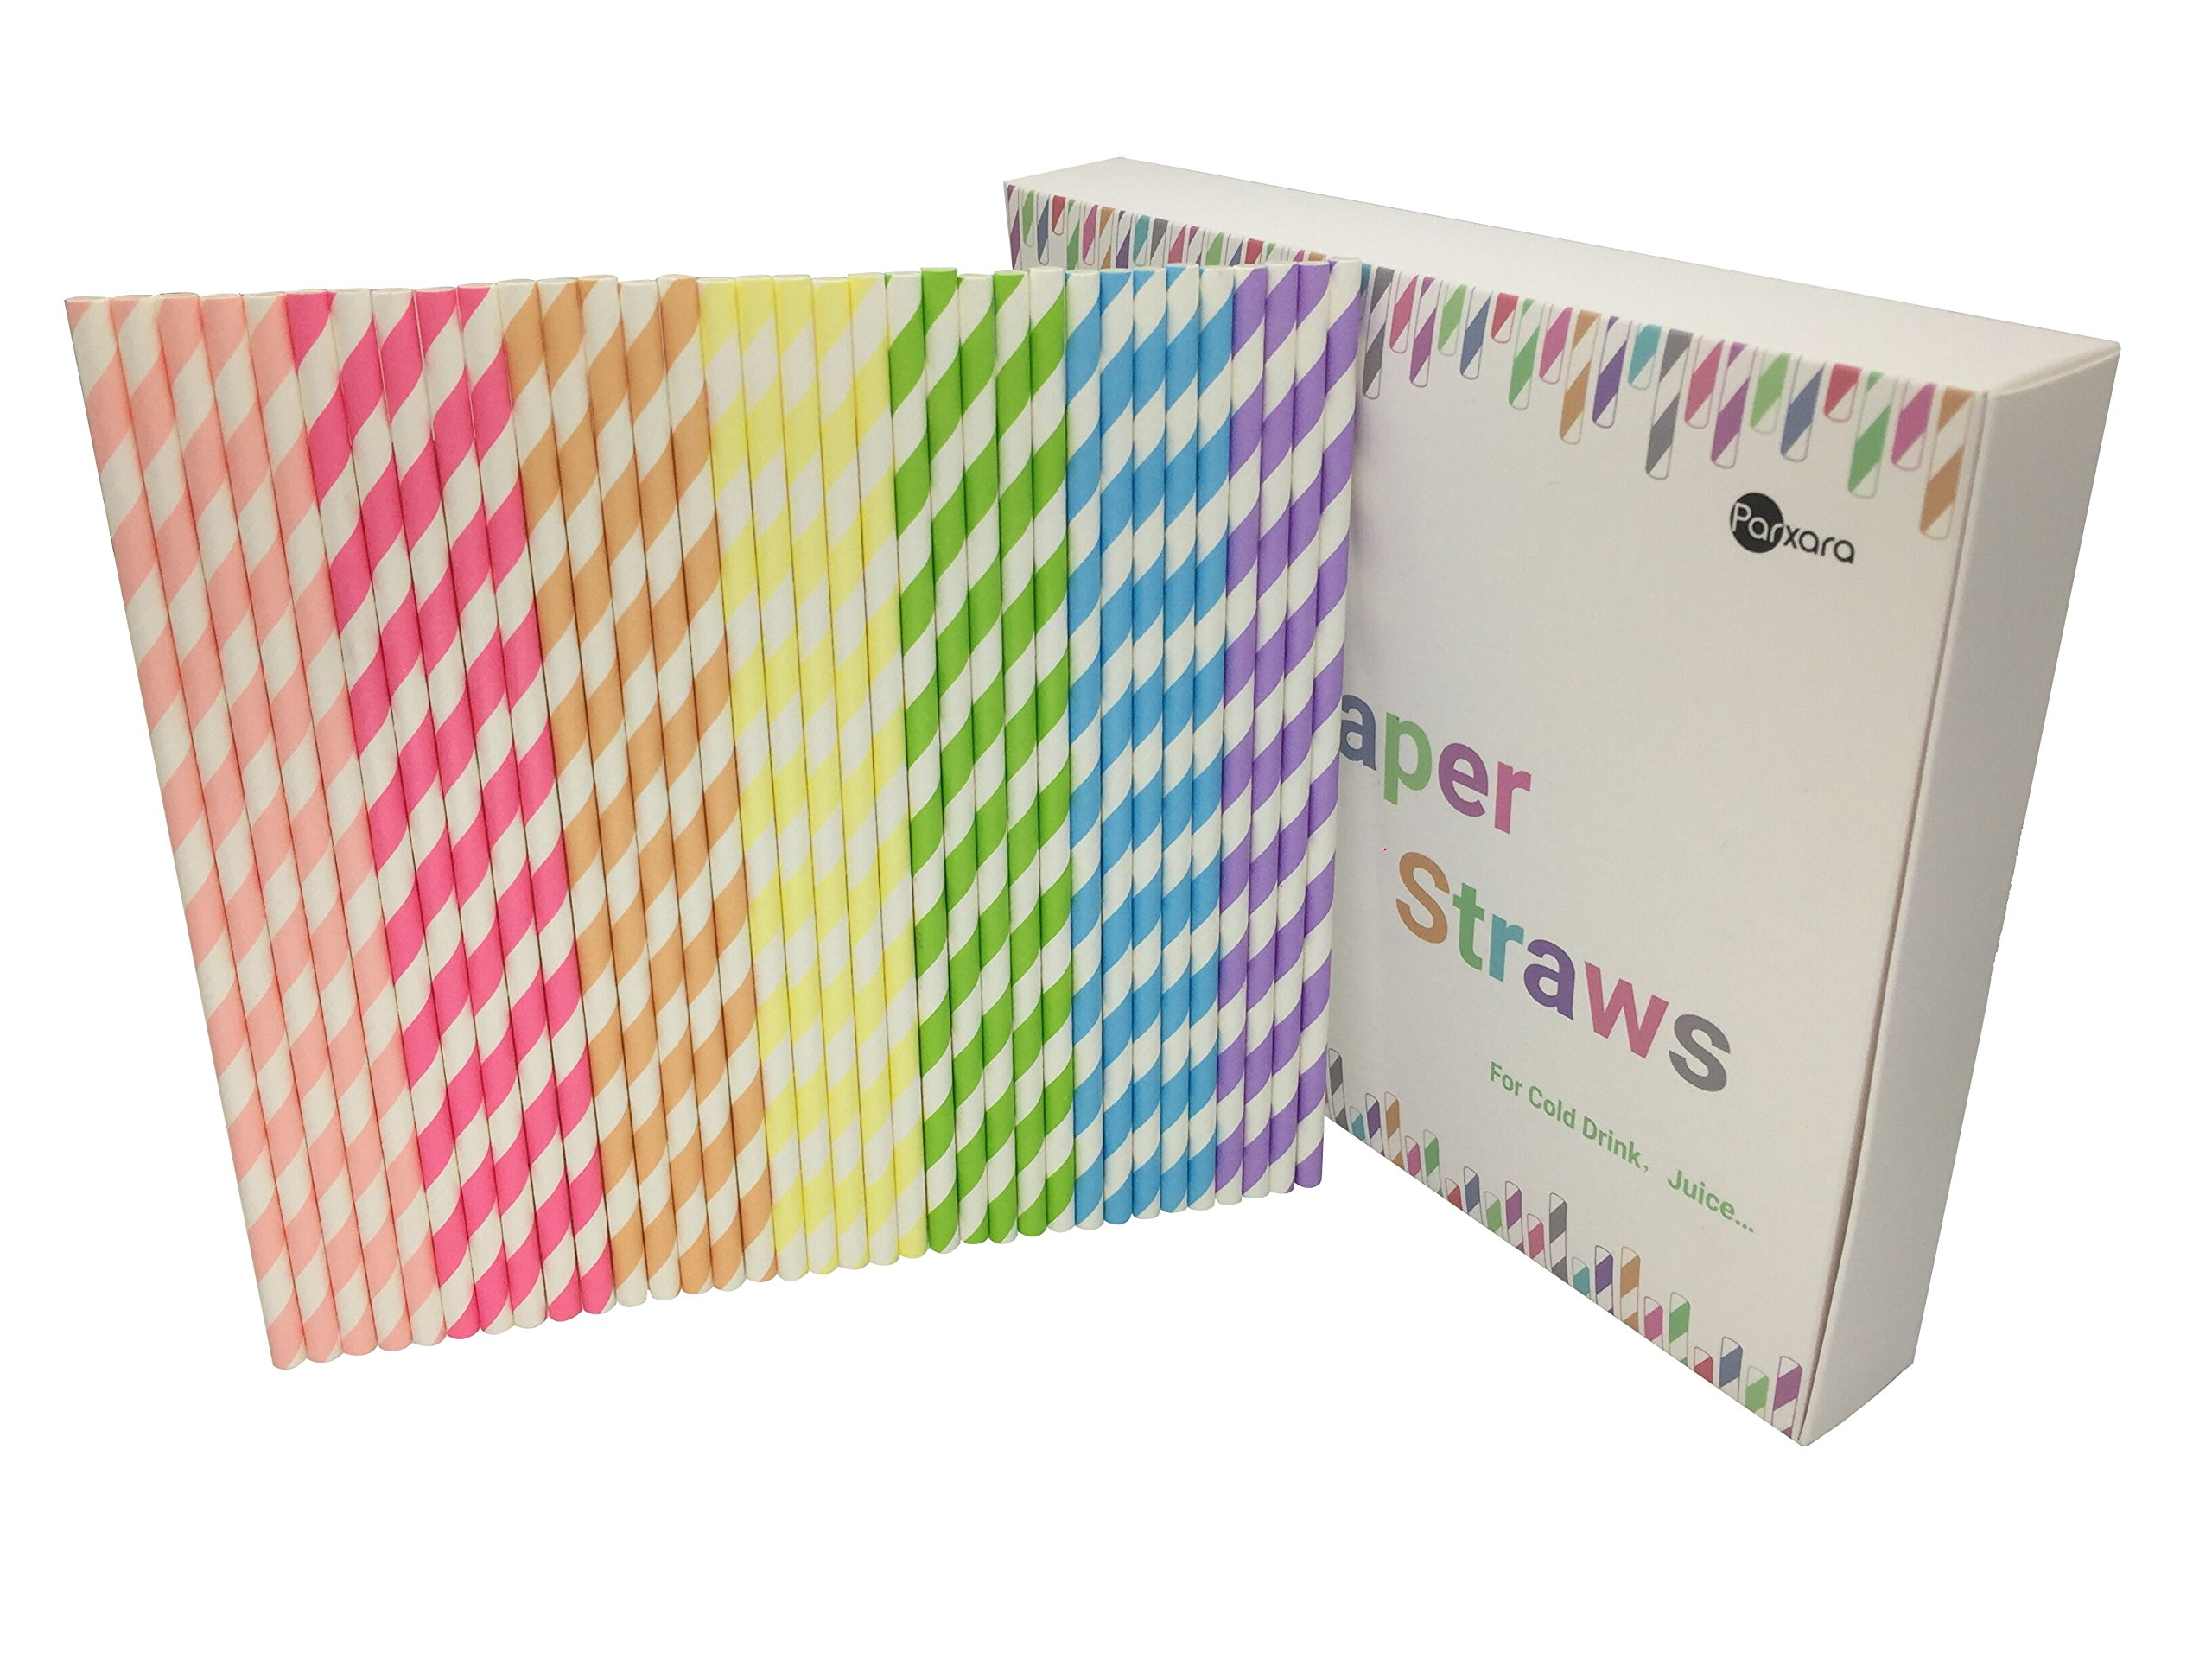 Parxara Straws Paper with Recycable Packaging Bulk 175Pcs Drinking Straws Decorations for Party Birthday Wedding Baby Shower Valentine in 7 Multi-Color Rainbow (Multicolor 2)